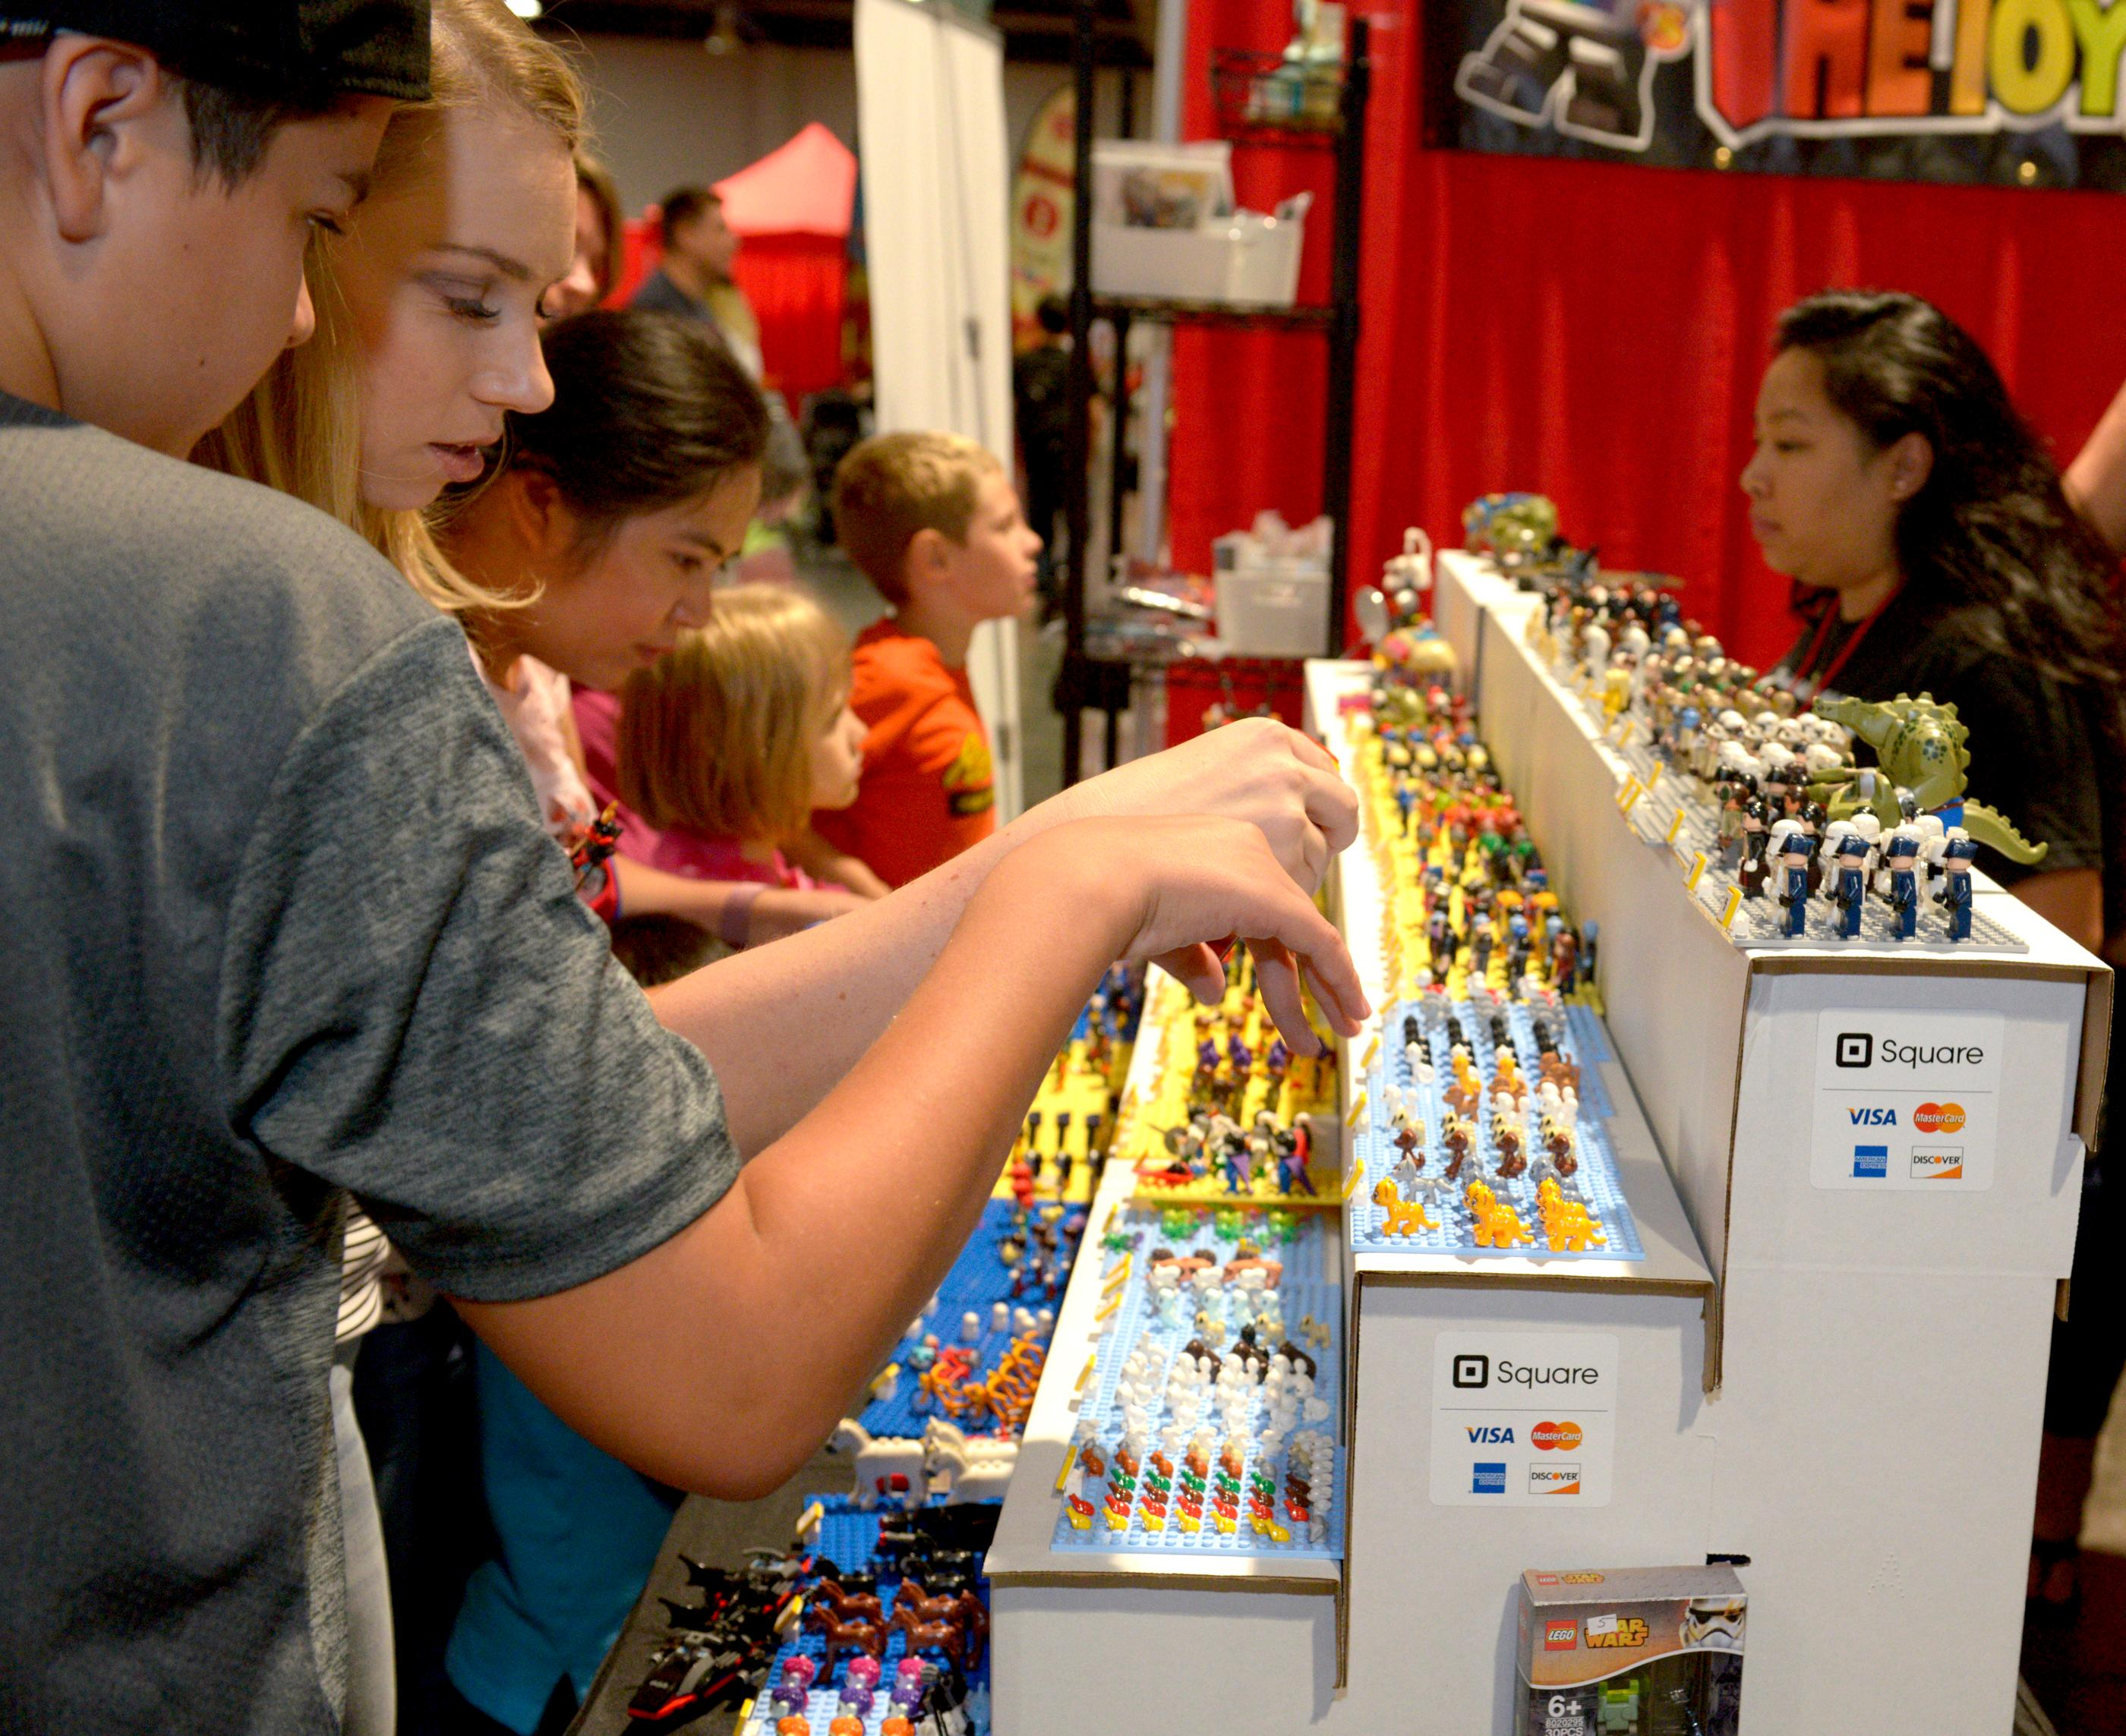 Fans check-out hundreds of Lego miniature characters during the Brick Fest Live Lego Fan Experience at the Las Vegas Convention Center, September 9, 2017. [Glenn Pinkerton/Las Vegas News Bureau]